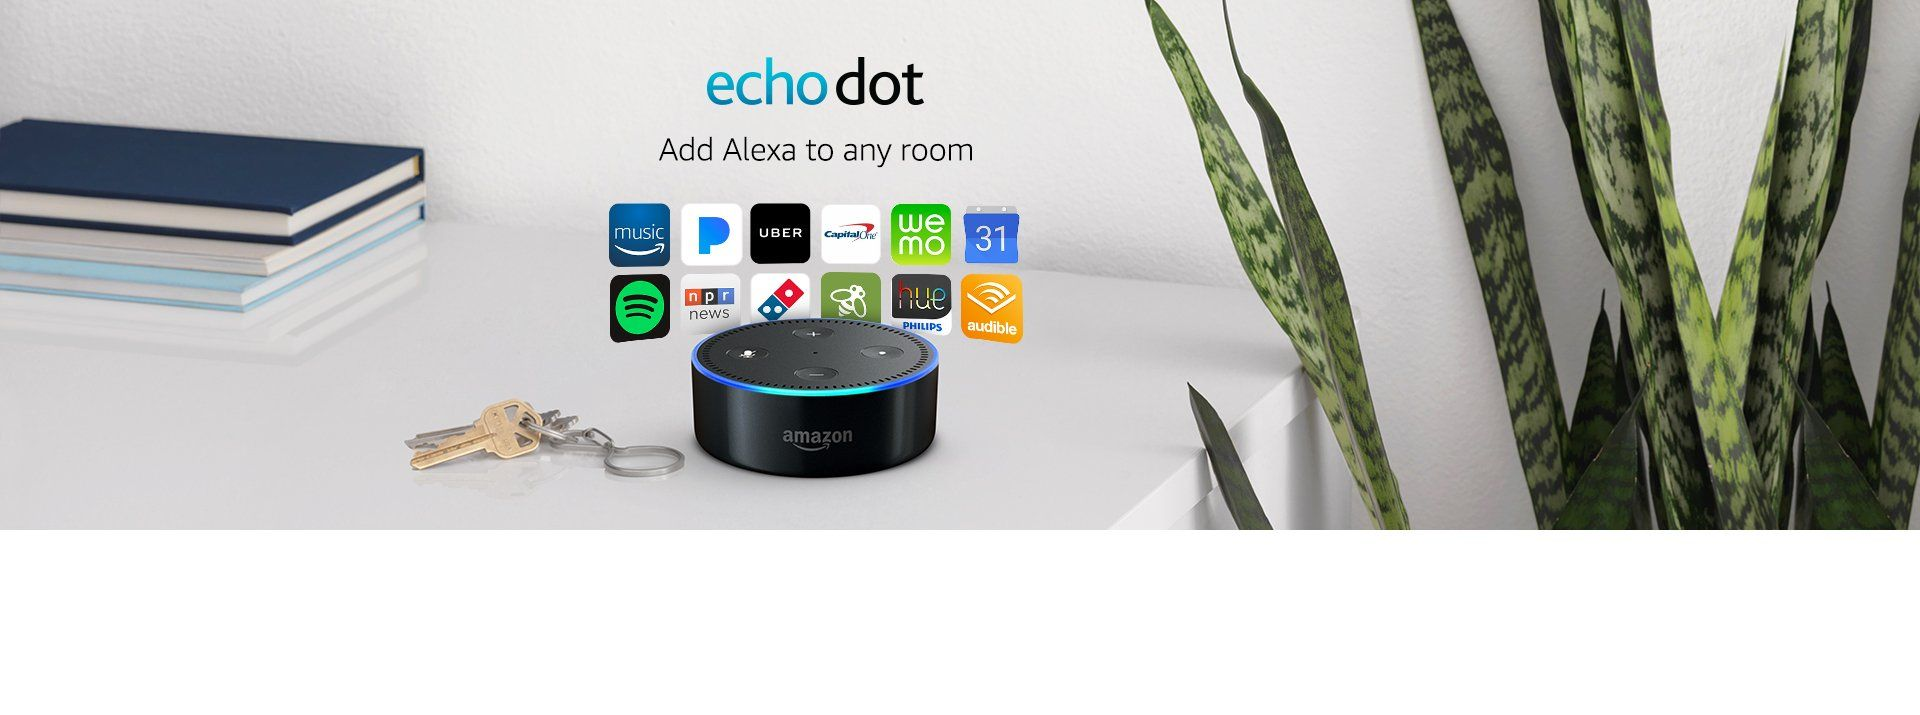 Amazon Audible Affiliate Echo Dot 2nd Generation Black Click On The Image For